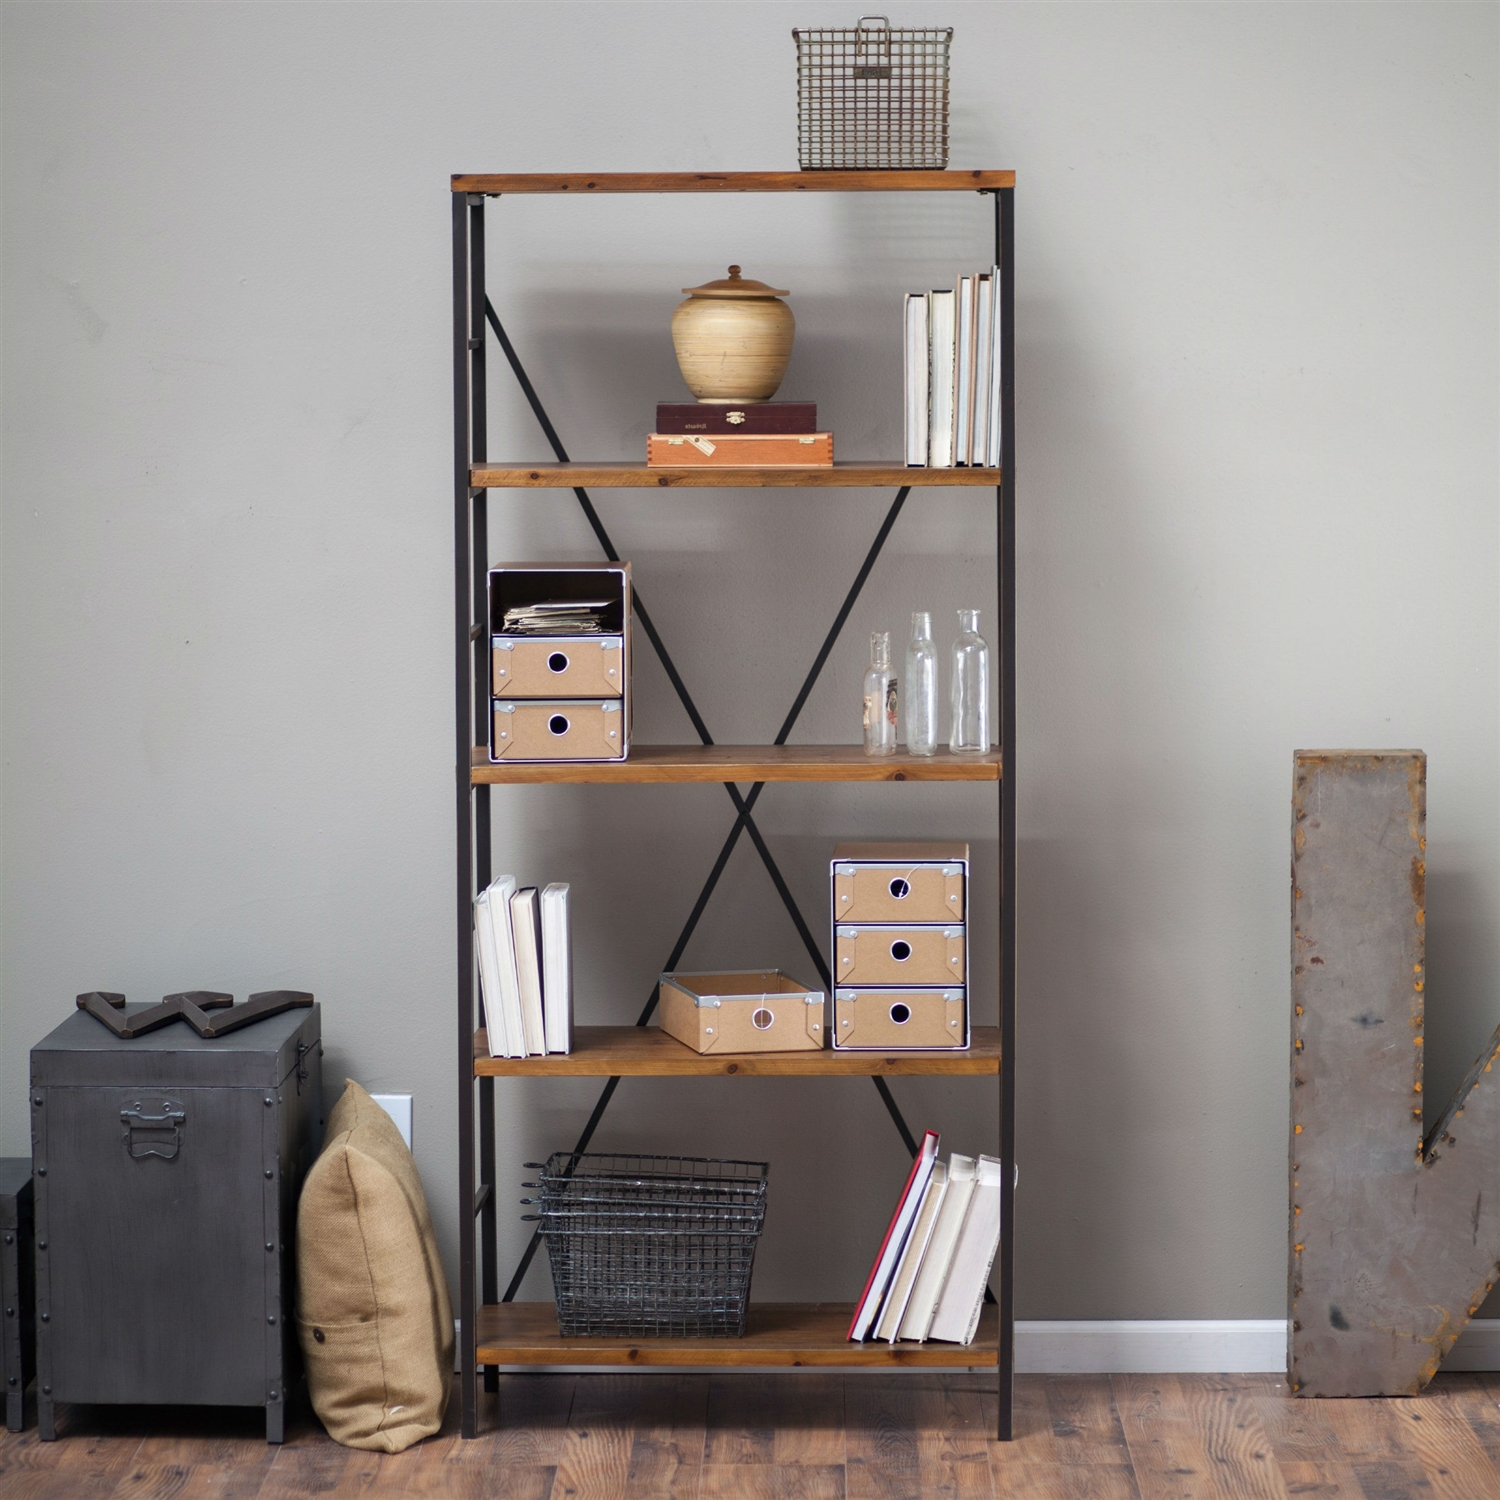 5 Shelf Bookcase With Fir Wood Shelves 68 Inch Tall In Rustic Bronze